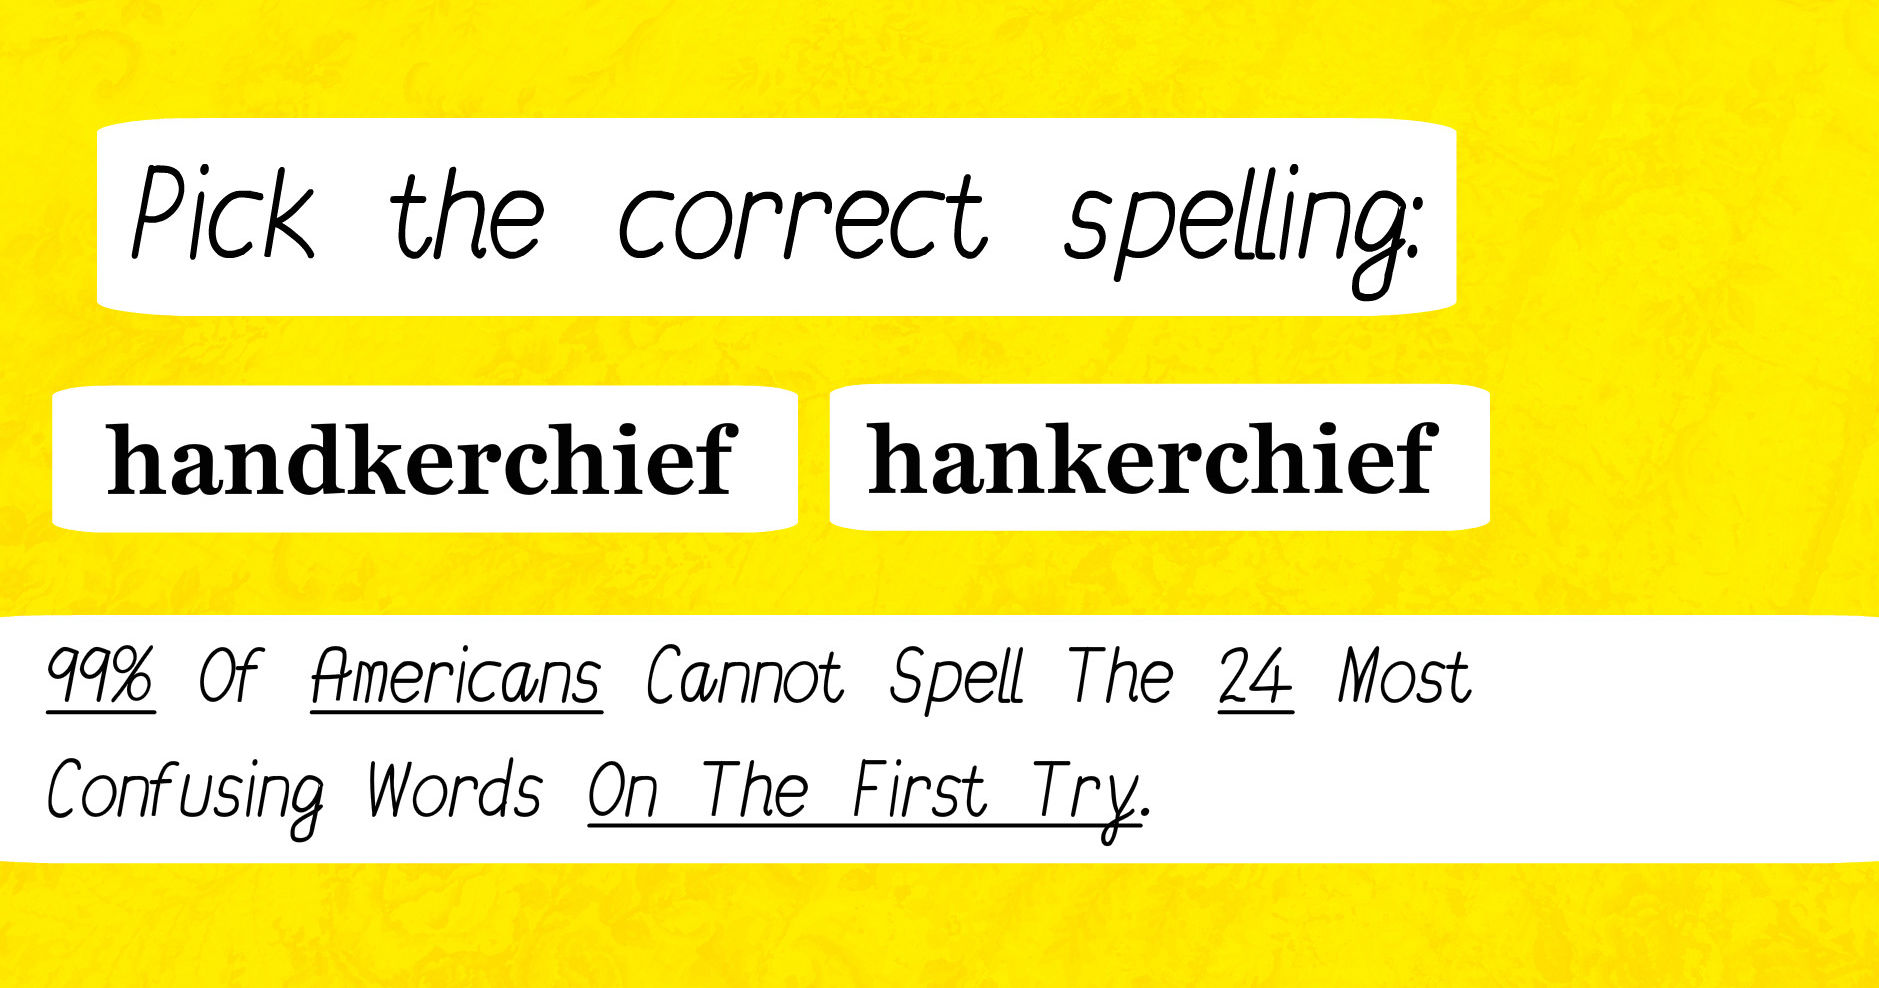 How to spell is not correct 24